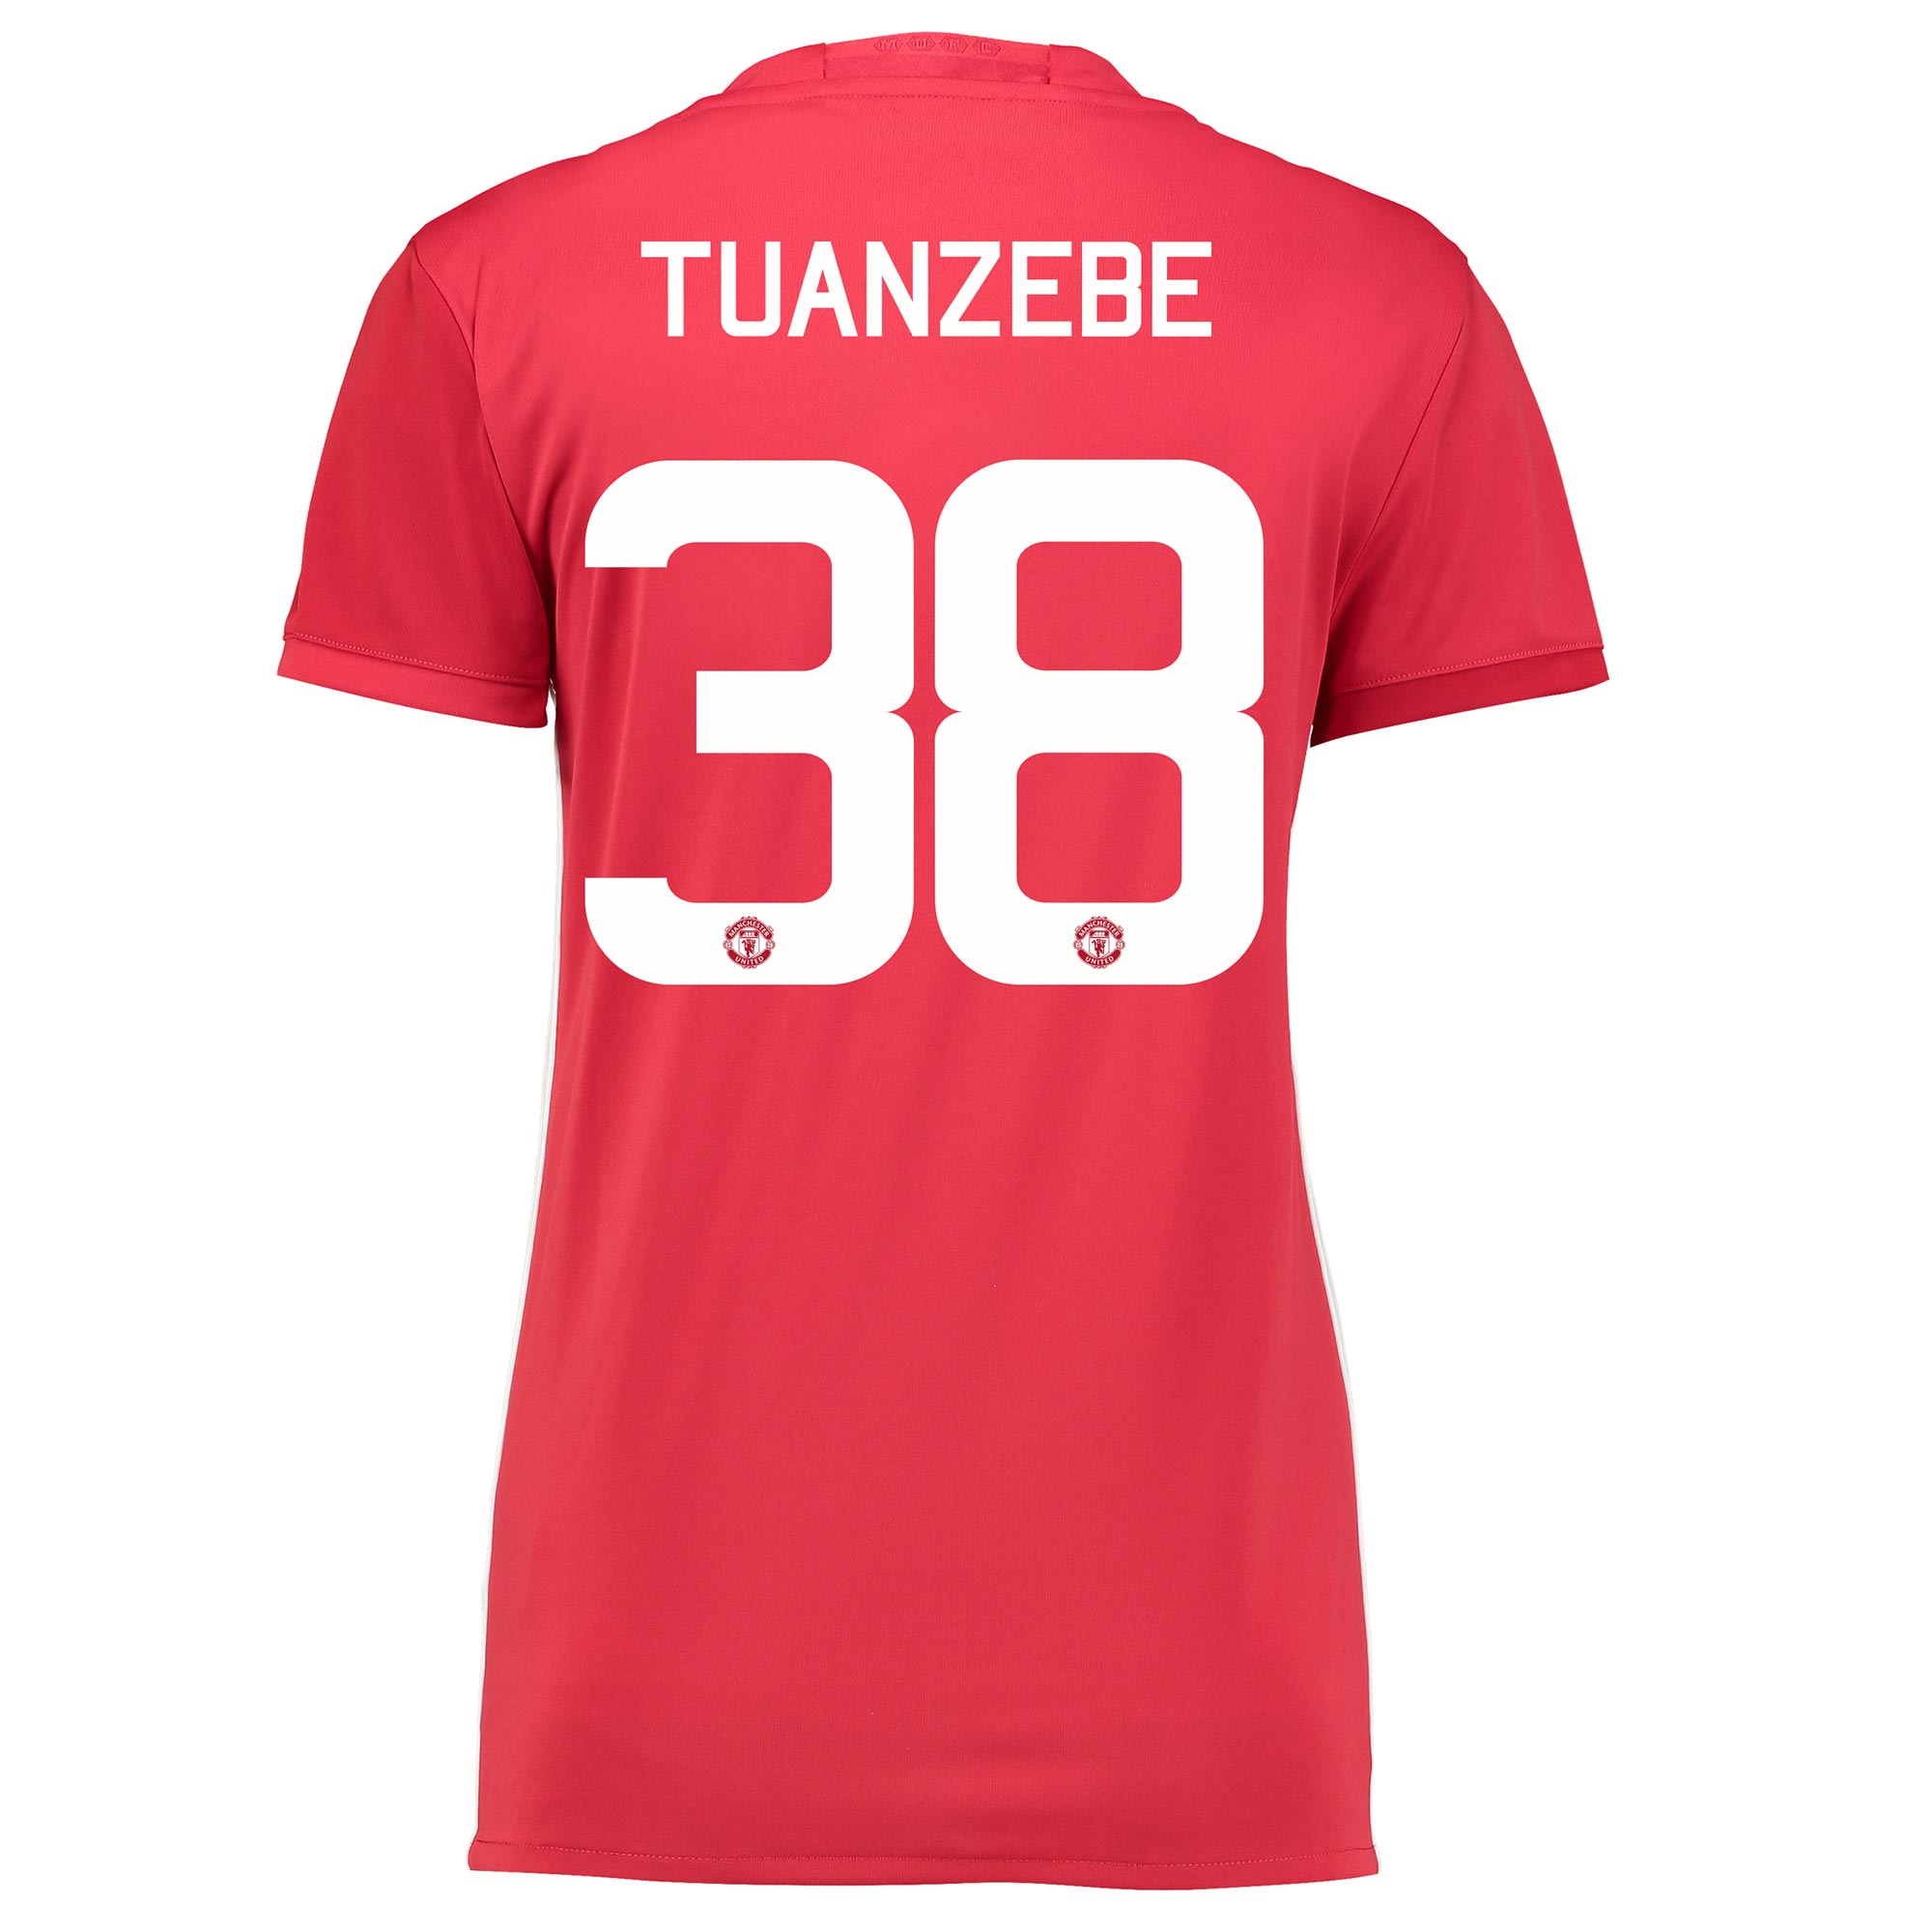 Manchester United Home Cup Shirt 2016-17 - Womens with Tuanzebe 38 pri